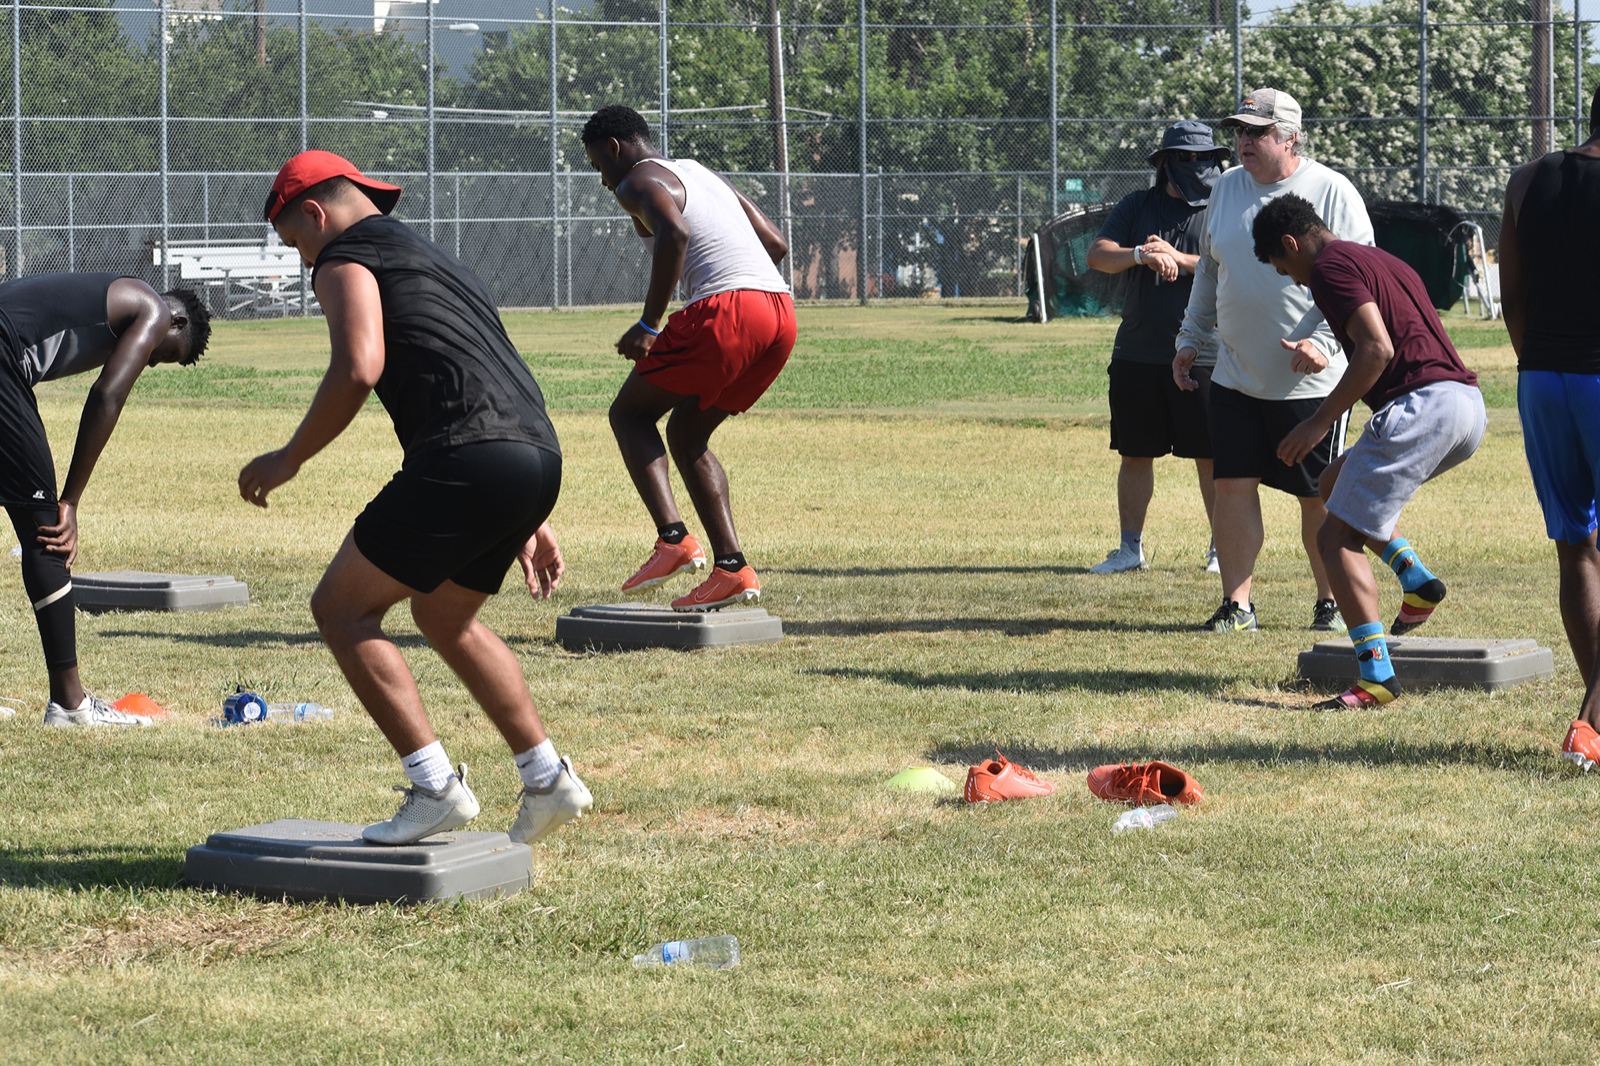 Summer workouts on hold, but North Dallas Coach Bobby Estes is pleased with progress so far